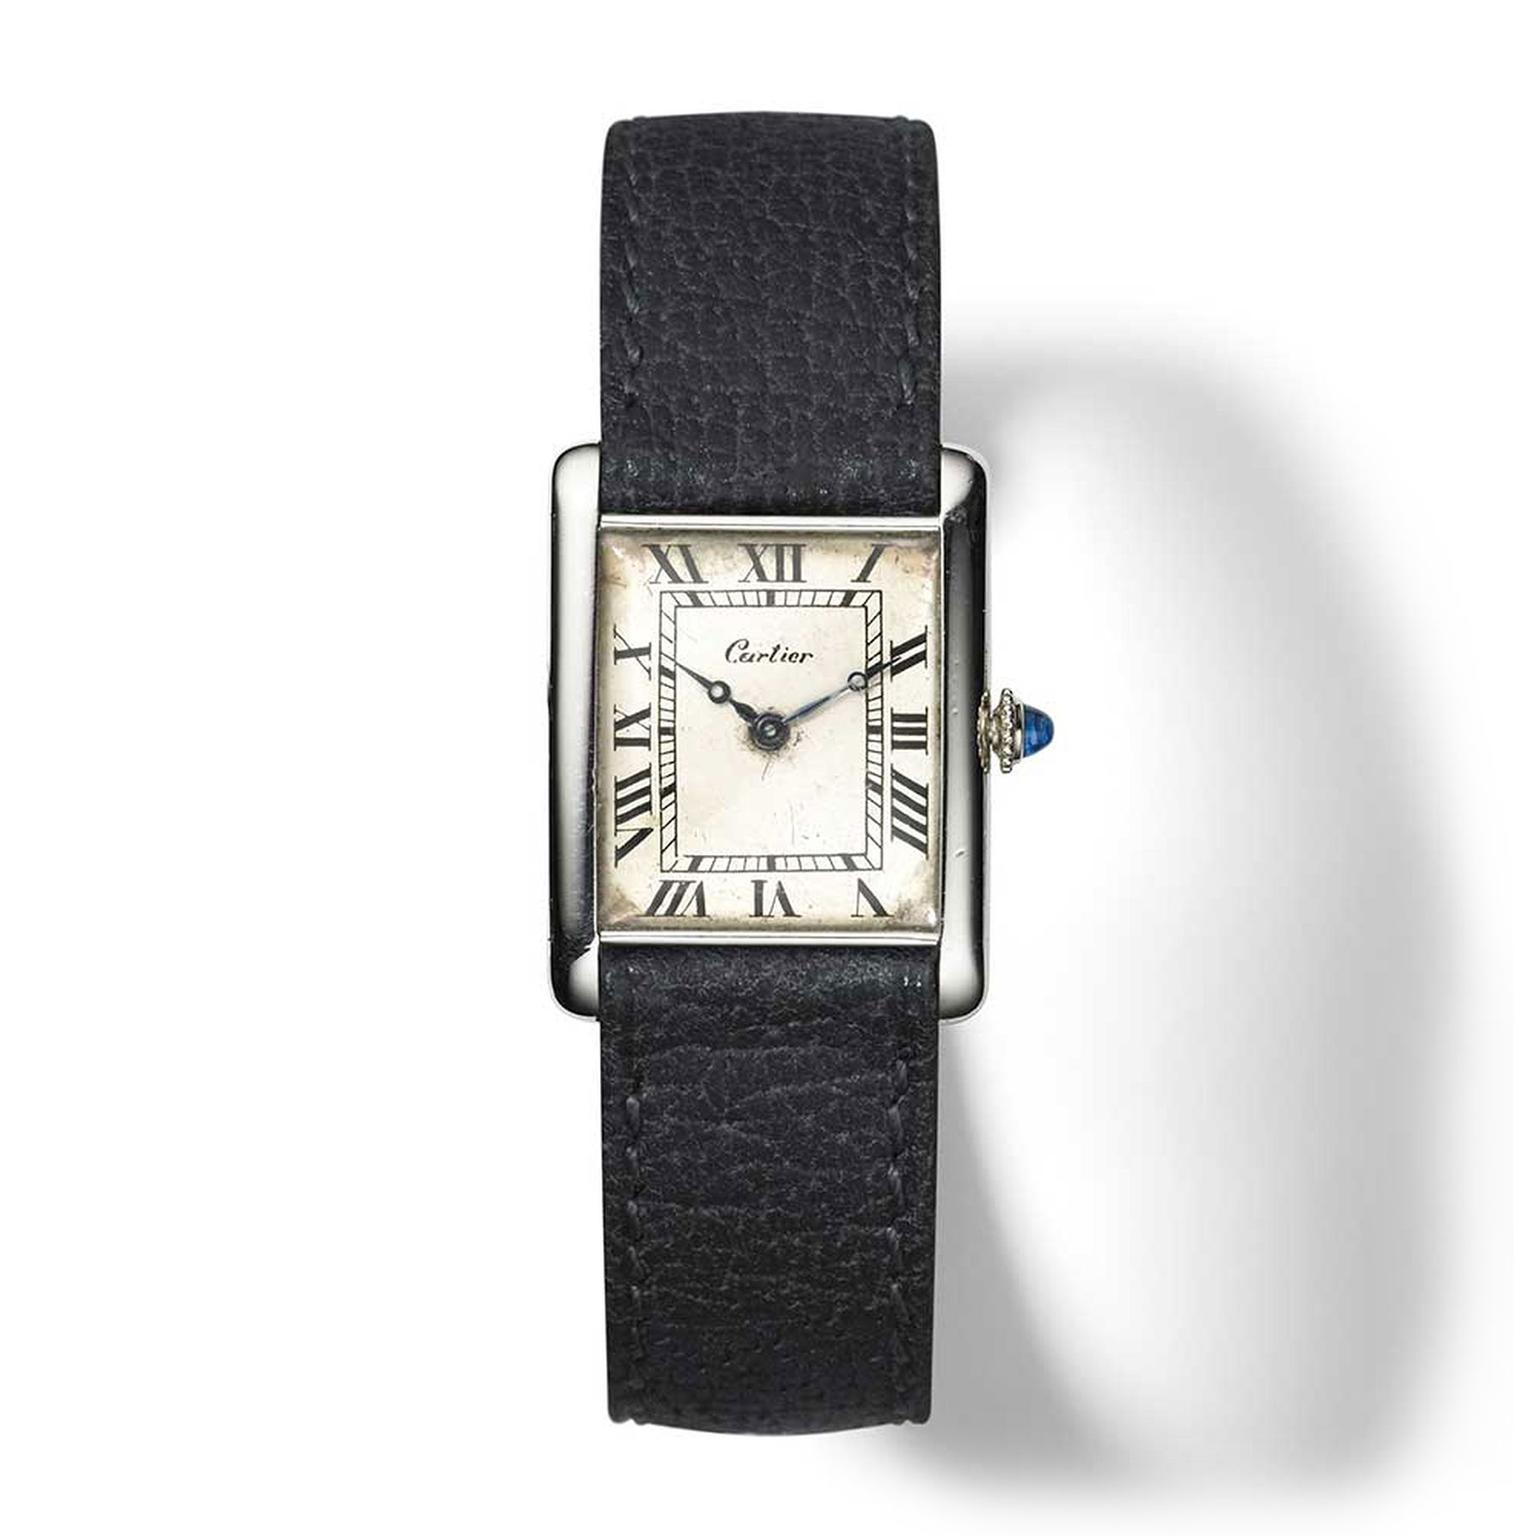 War provided an unconventional muse for Cartier when, in 1917, it developed the legendary Tank watch